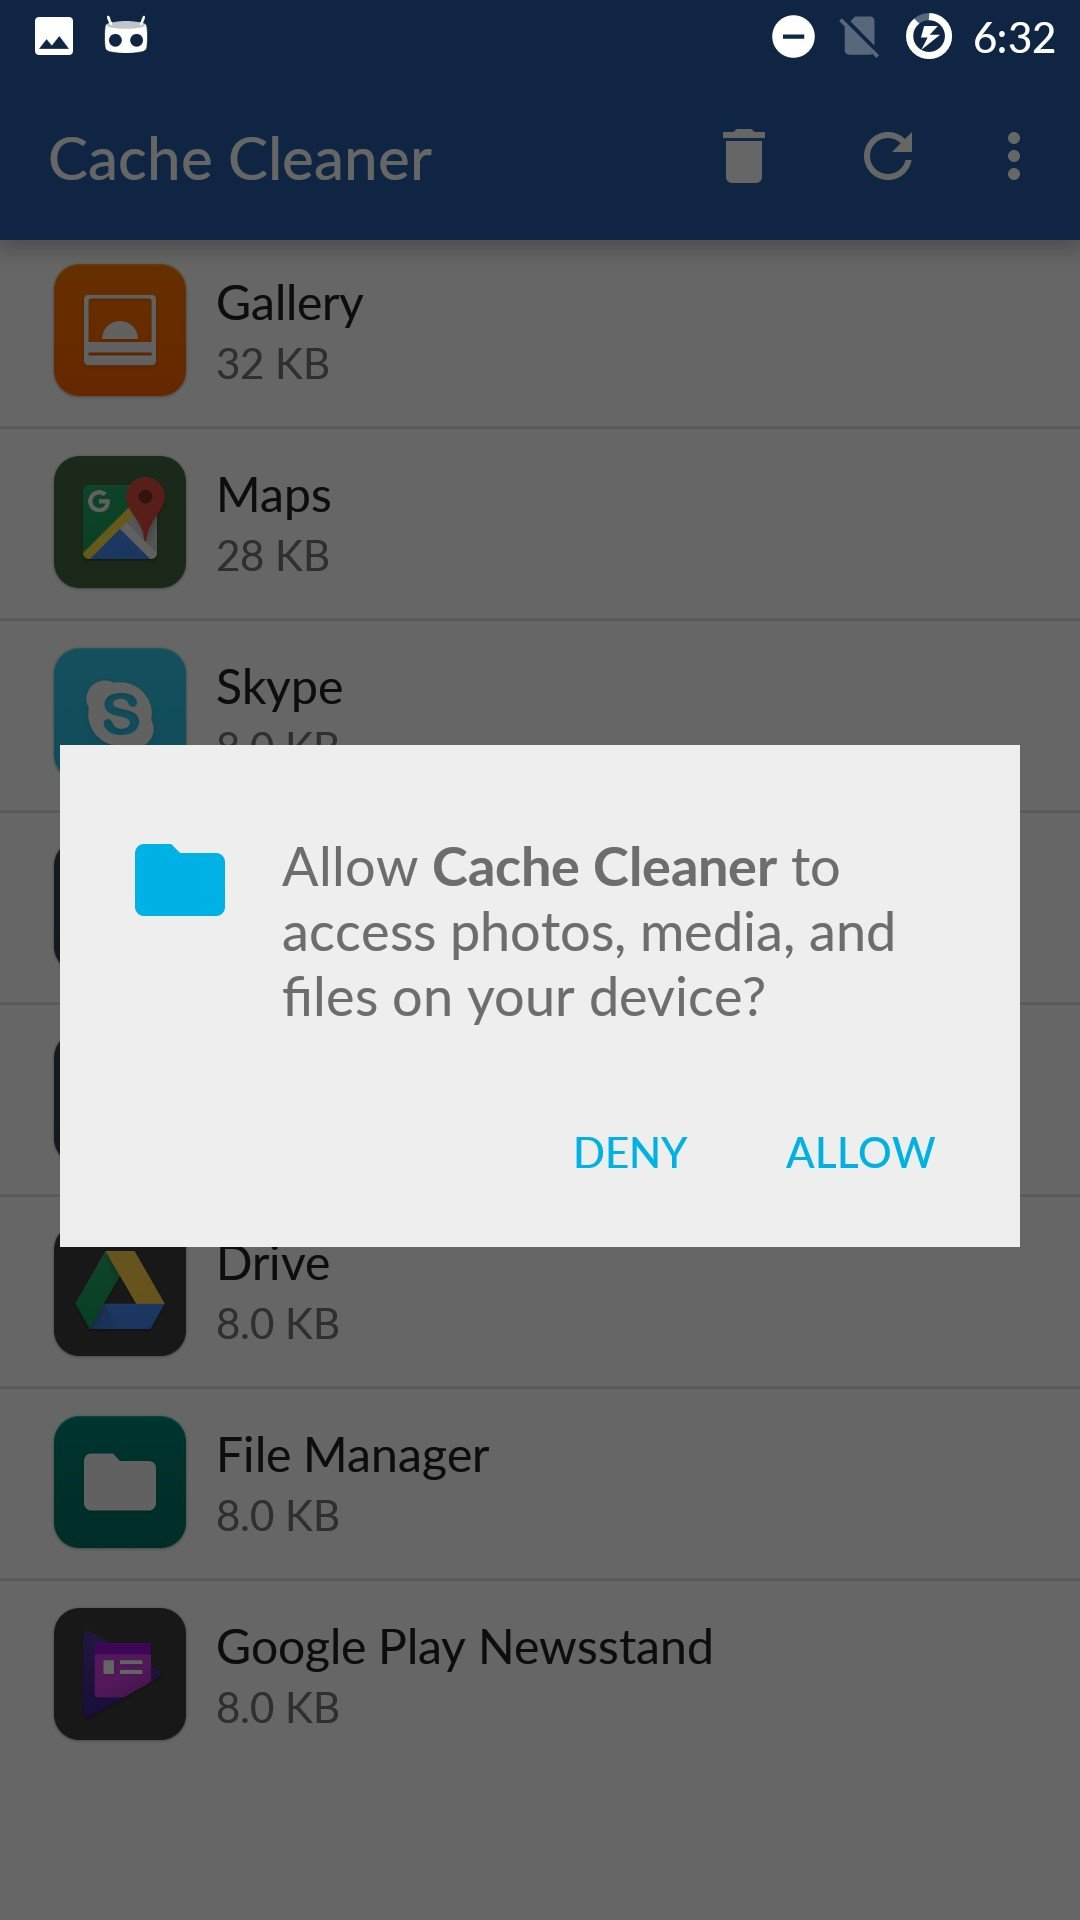 It's Possible To Update Thermation On Zingbytes Cache Cleaner Or Report It  As Discontinued, Duplicated